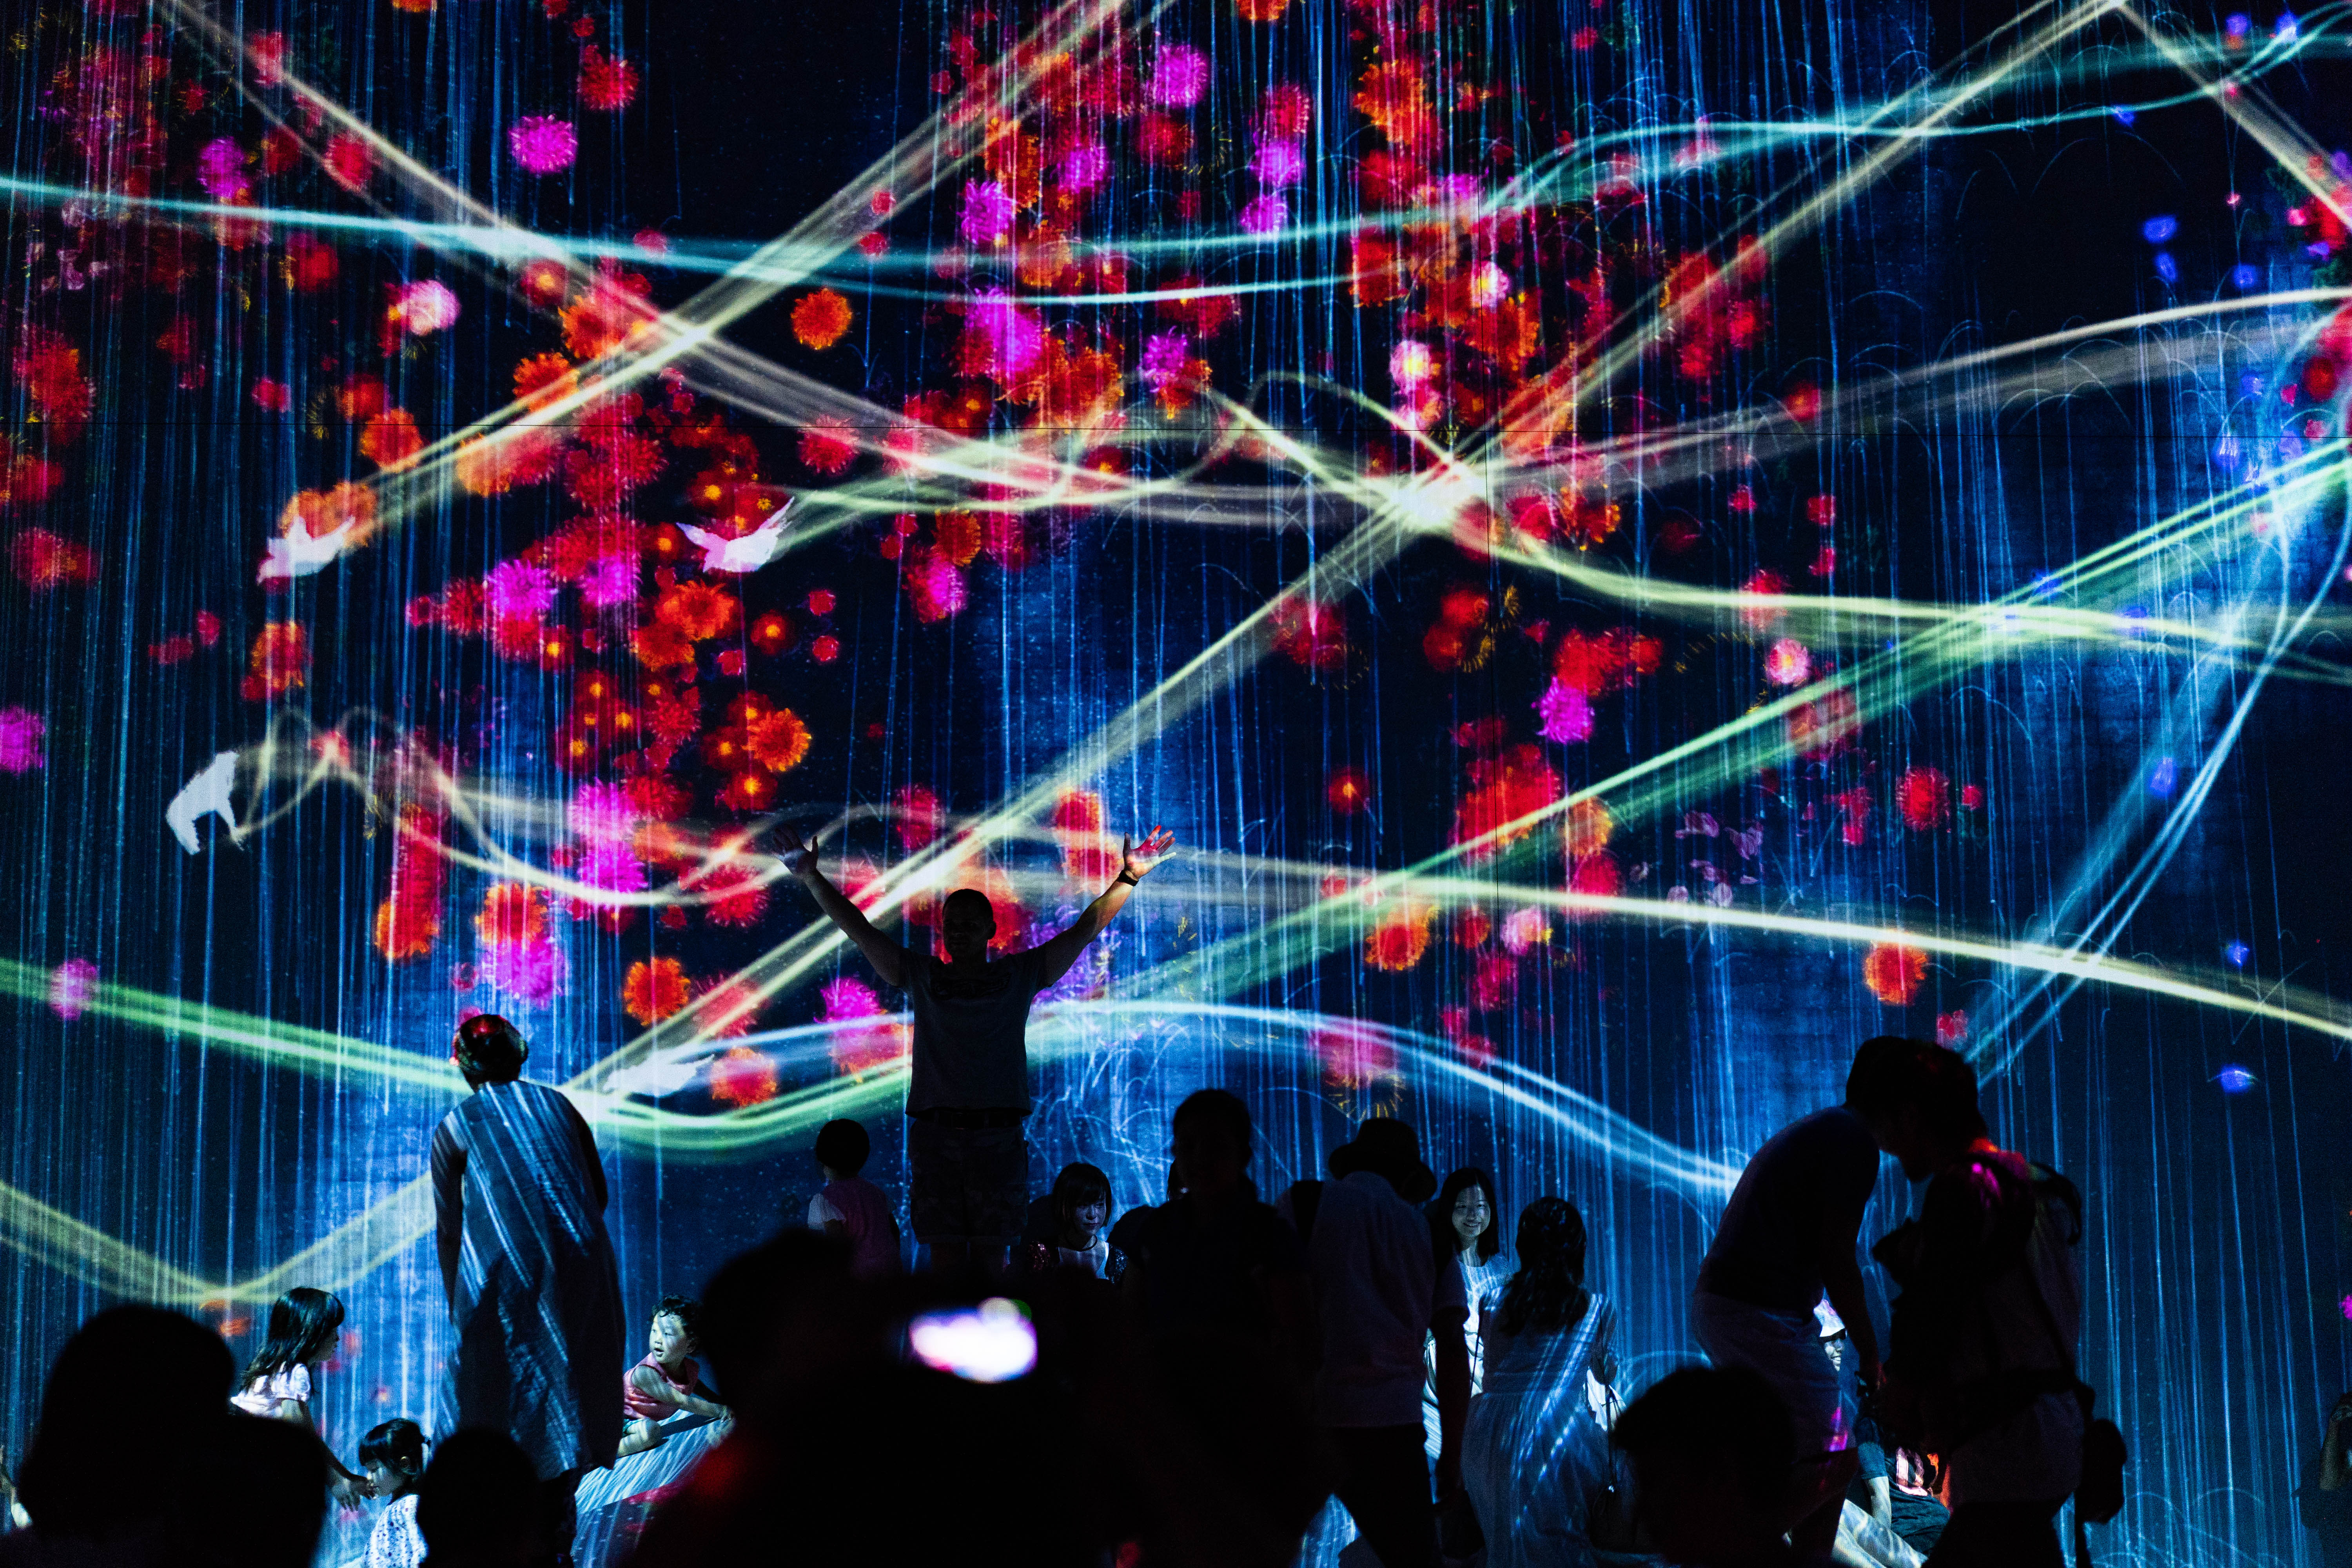 The Mori Digital Art Museum in Odaiba is one of many amazing Tokyo attractions